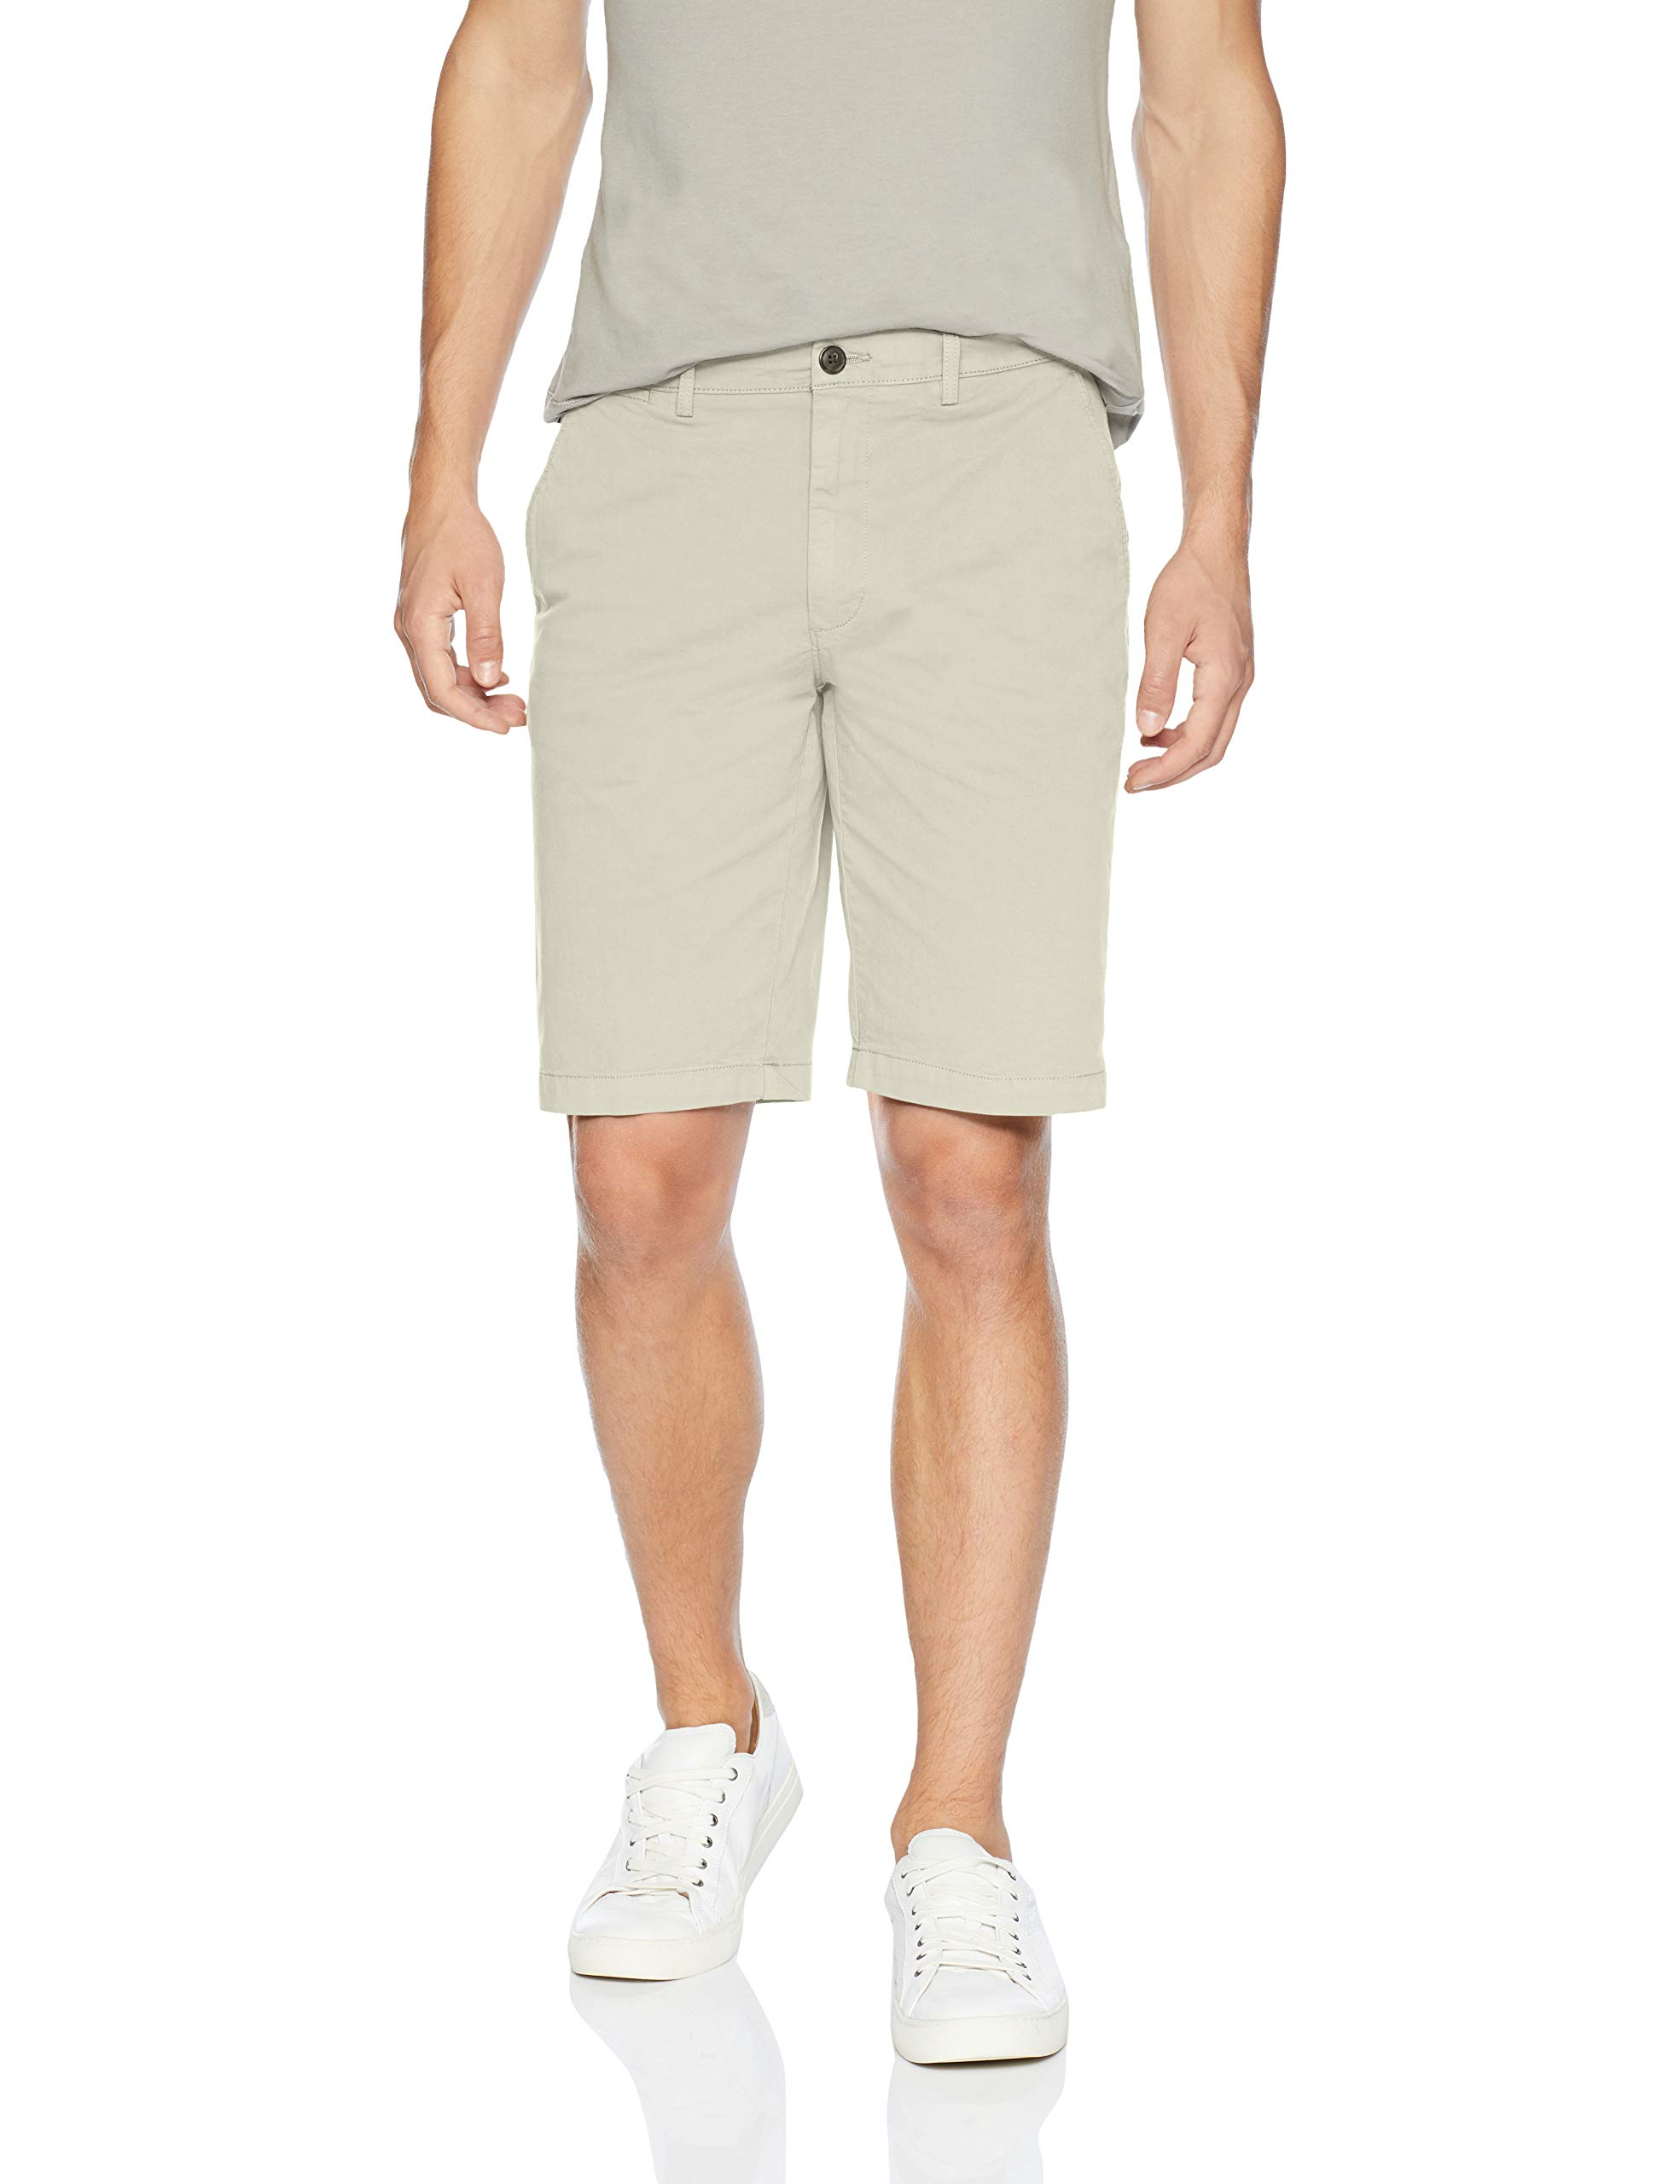 Goodthreads Men's 11'' Inseam Flat-Front Stretch Chino Shorts, -moonbeam, 38 by Goodthreads